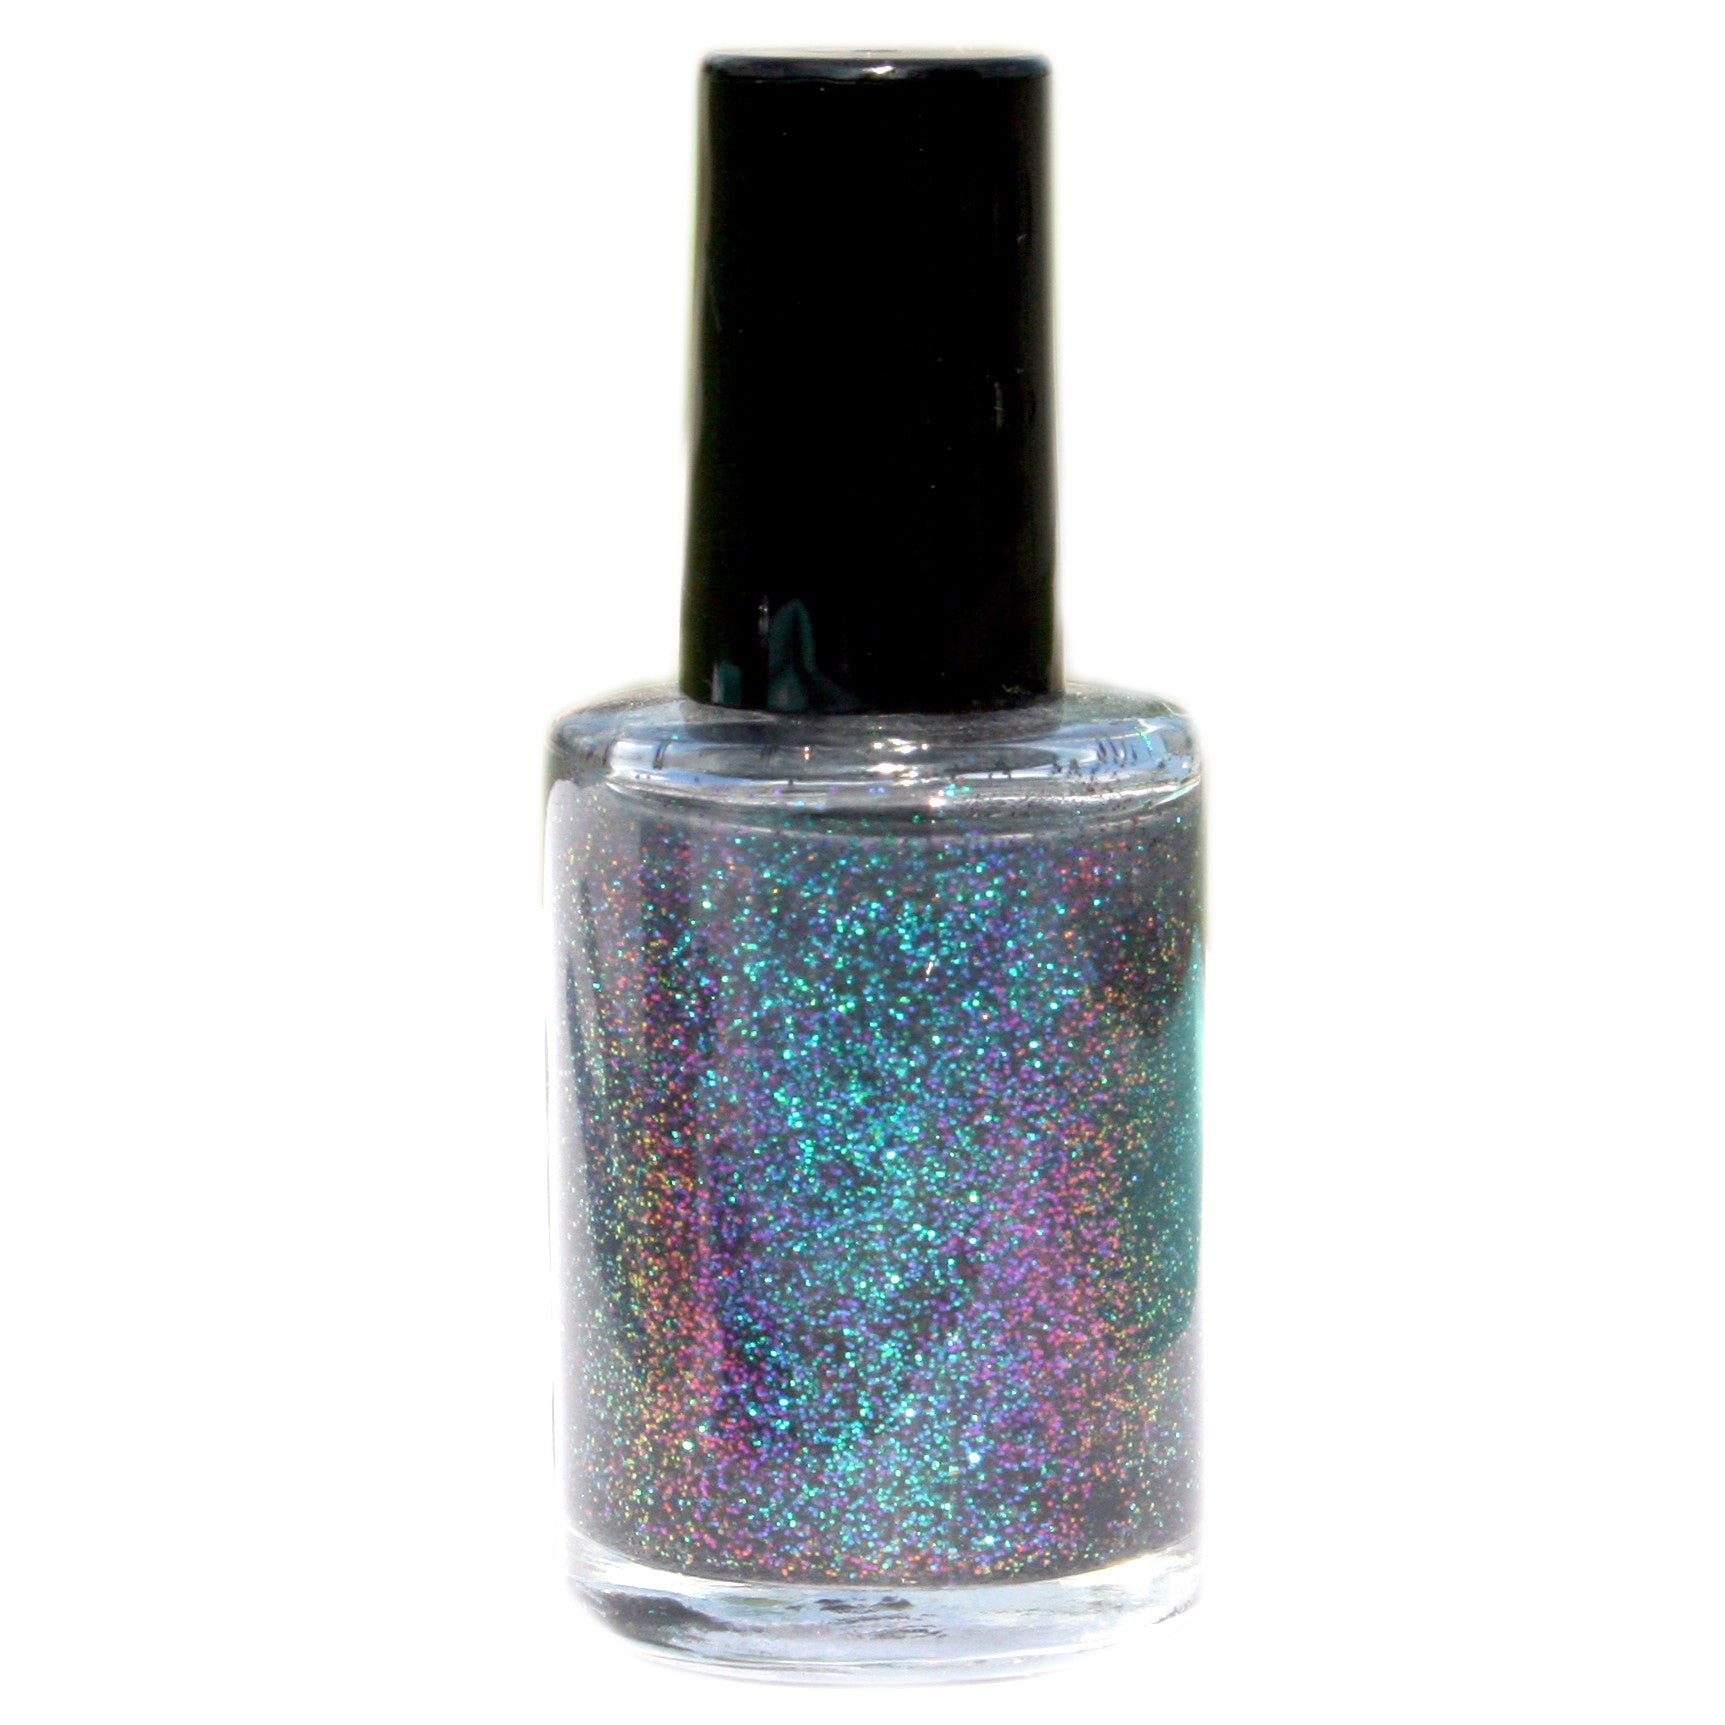 I Love Hue - Multichrome Glitter Top Coat - Baroness X